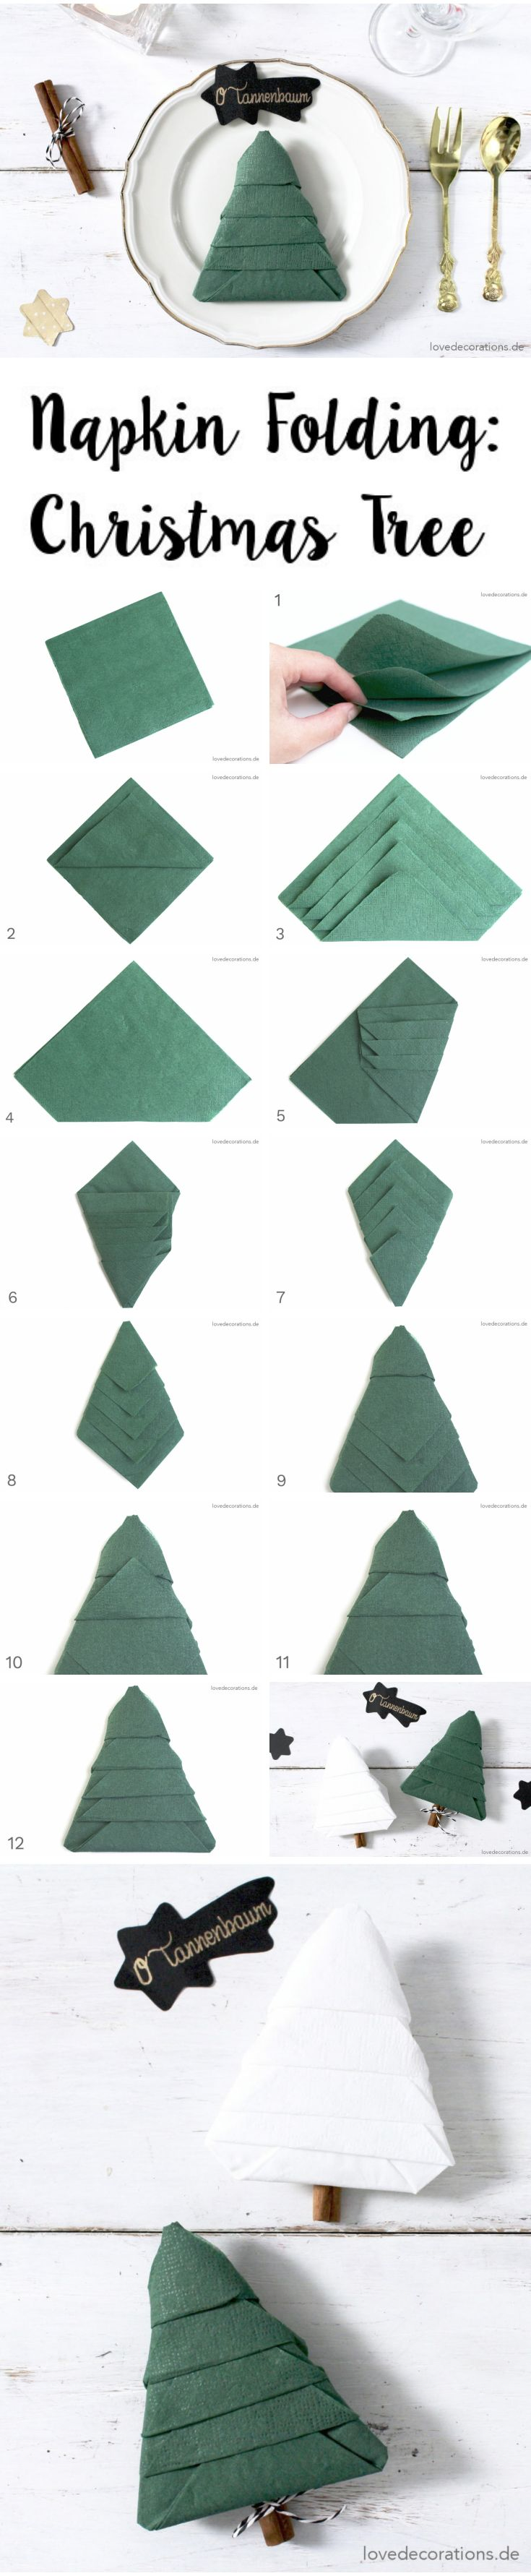 Serviette falten: Tannenbaum | Napkin Folding: Christmas Tree